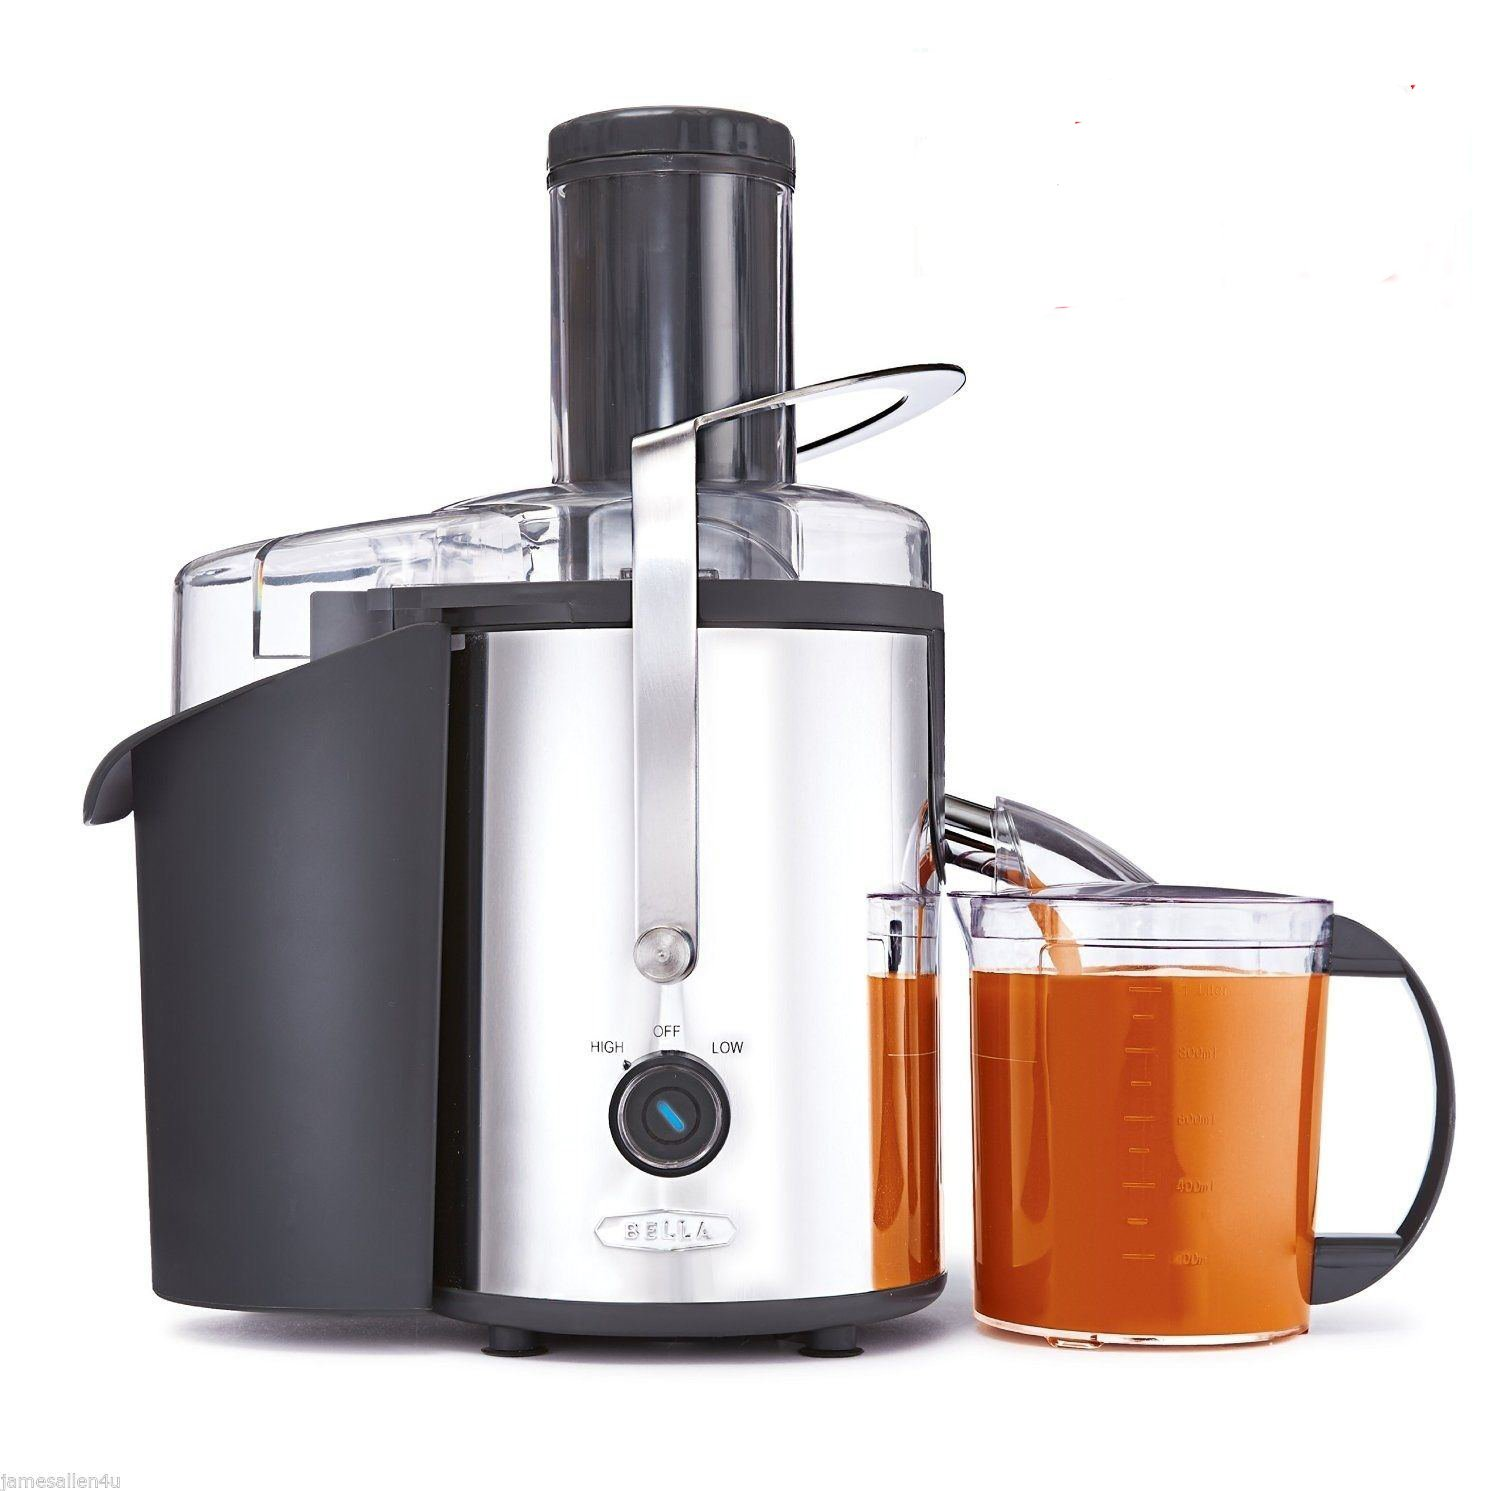 NEW Stainless Steel Whole Fruit Power Juicer Vegetable Citrus Juice Extractor